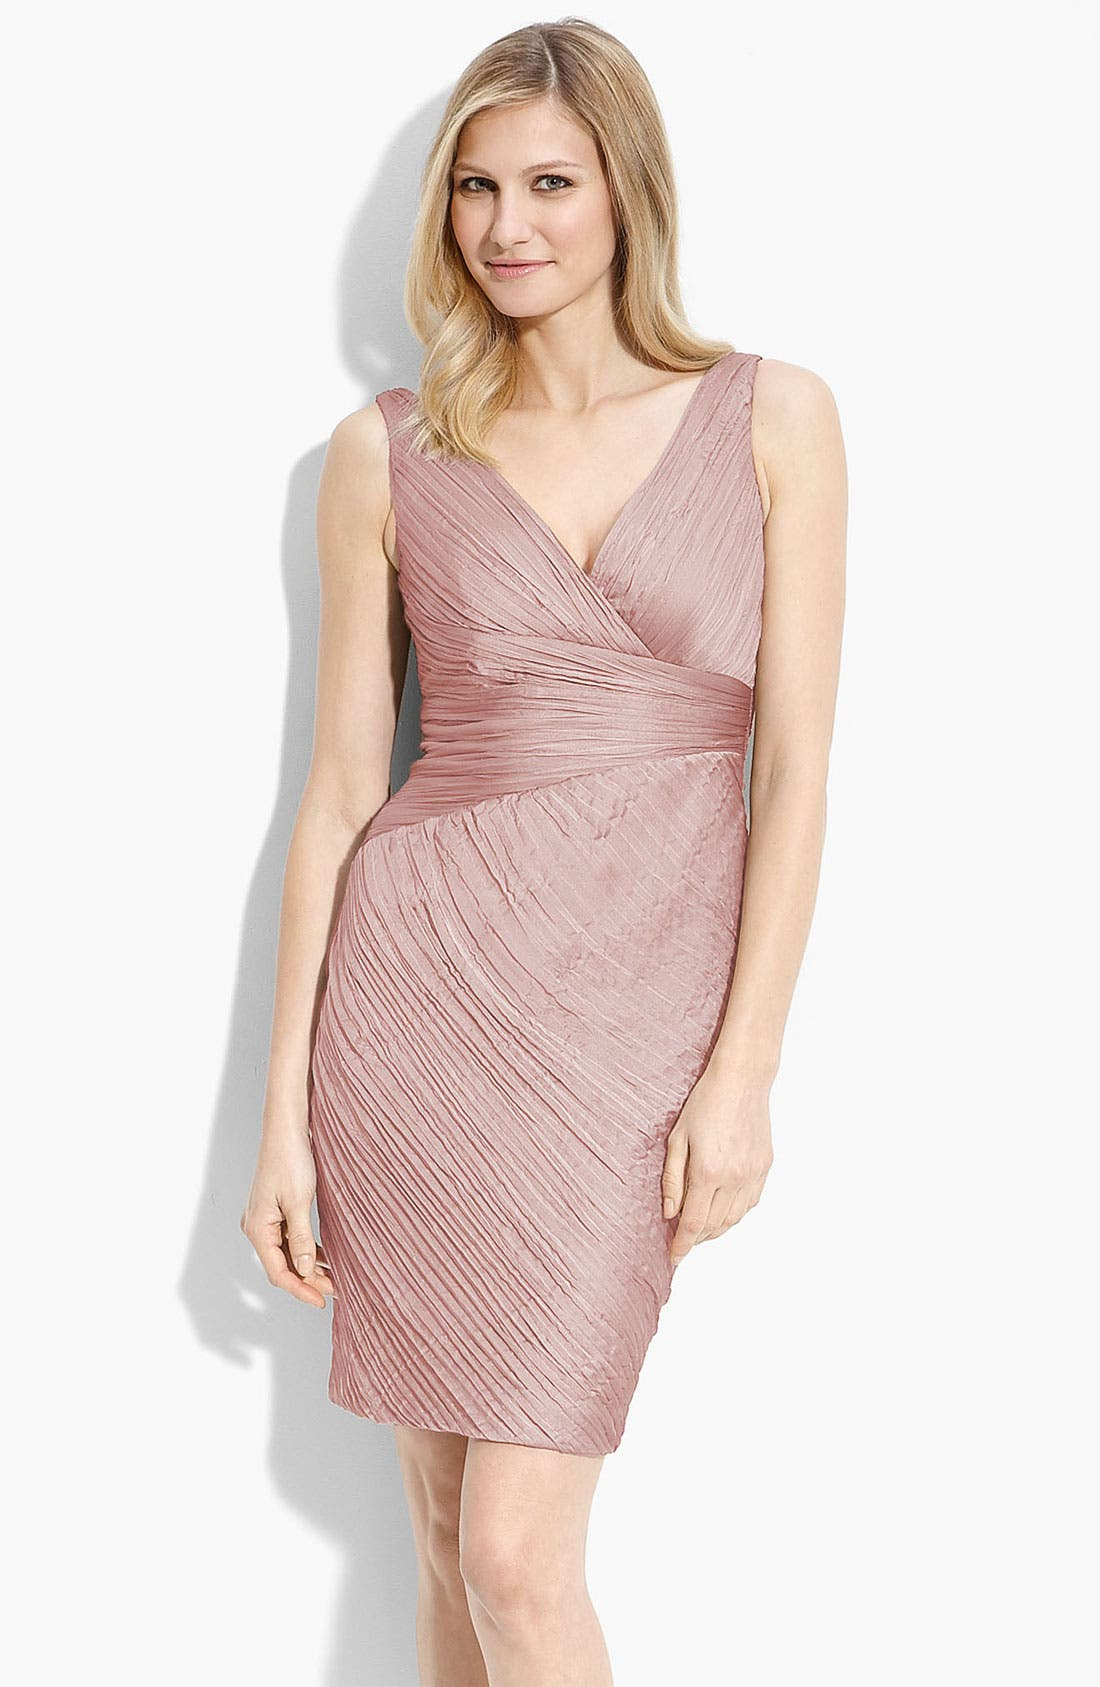 Alternate Image 1 Selected - ML Monique Lhuillier Bridesmaid Ruched Cationic Chiffon Dress (Nordstrom Exclusive)